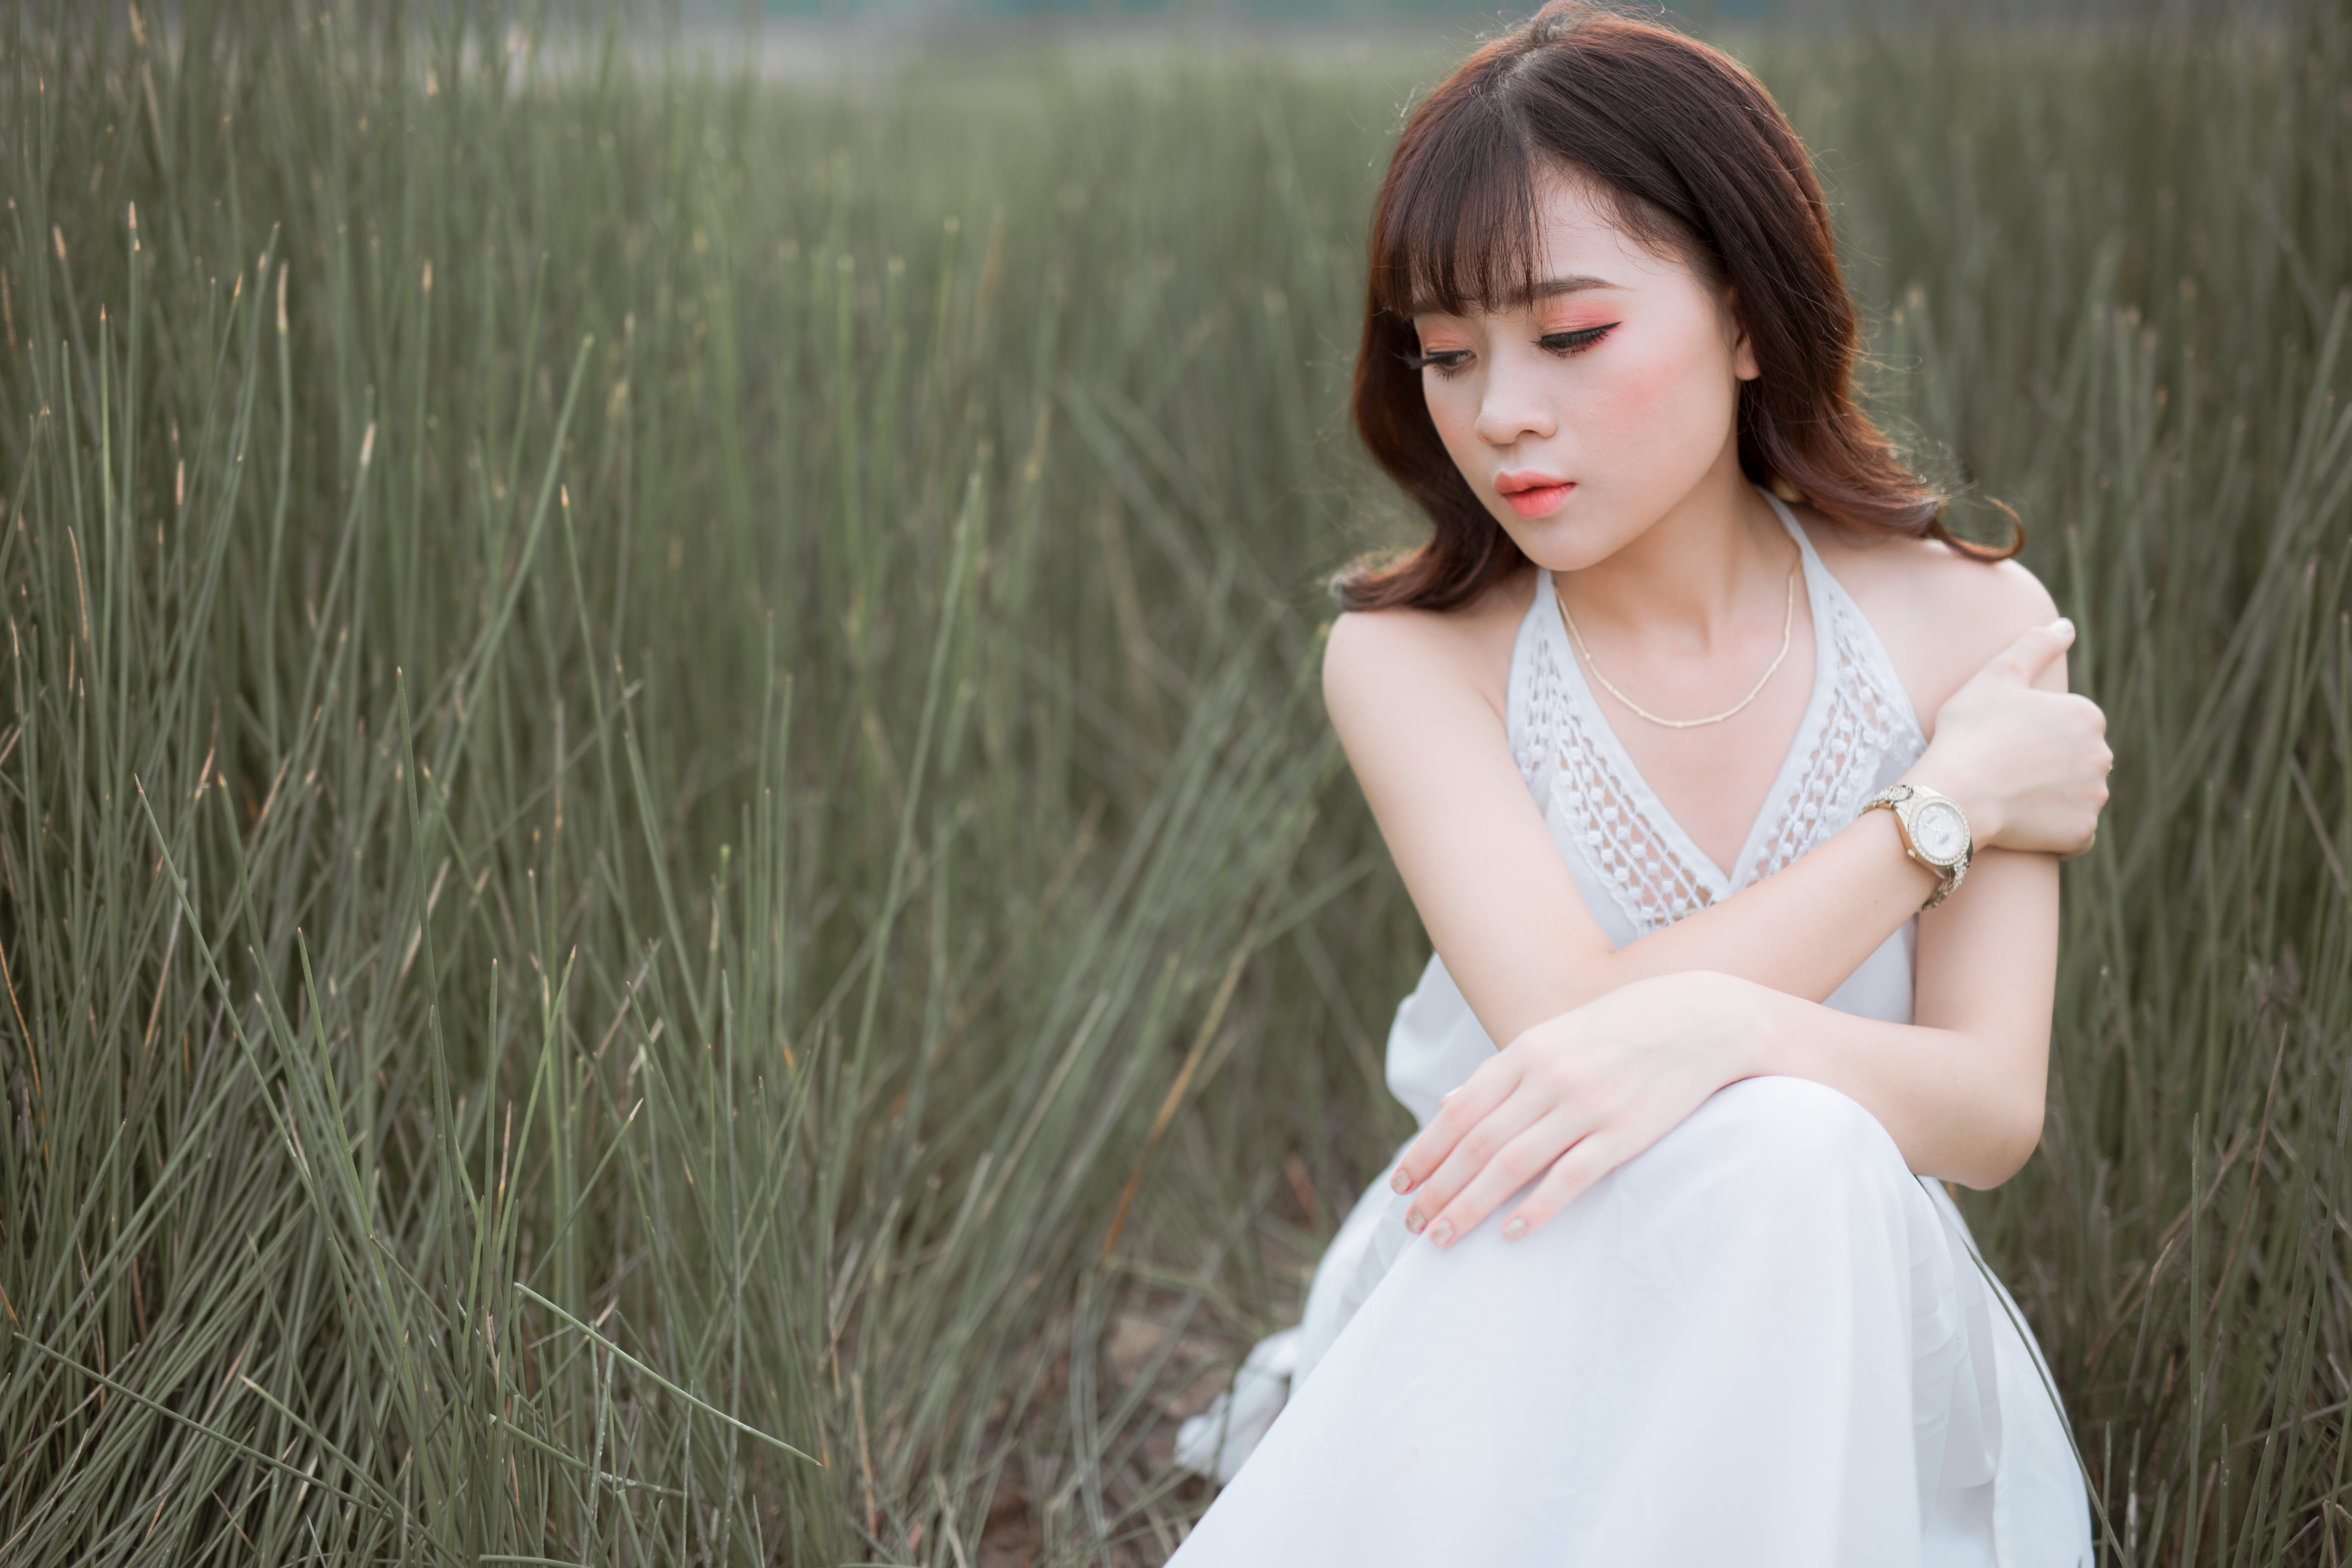 Woman Wearing White Halter Dress Surrounded By Grass